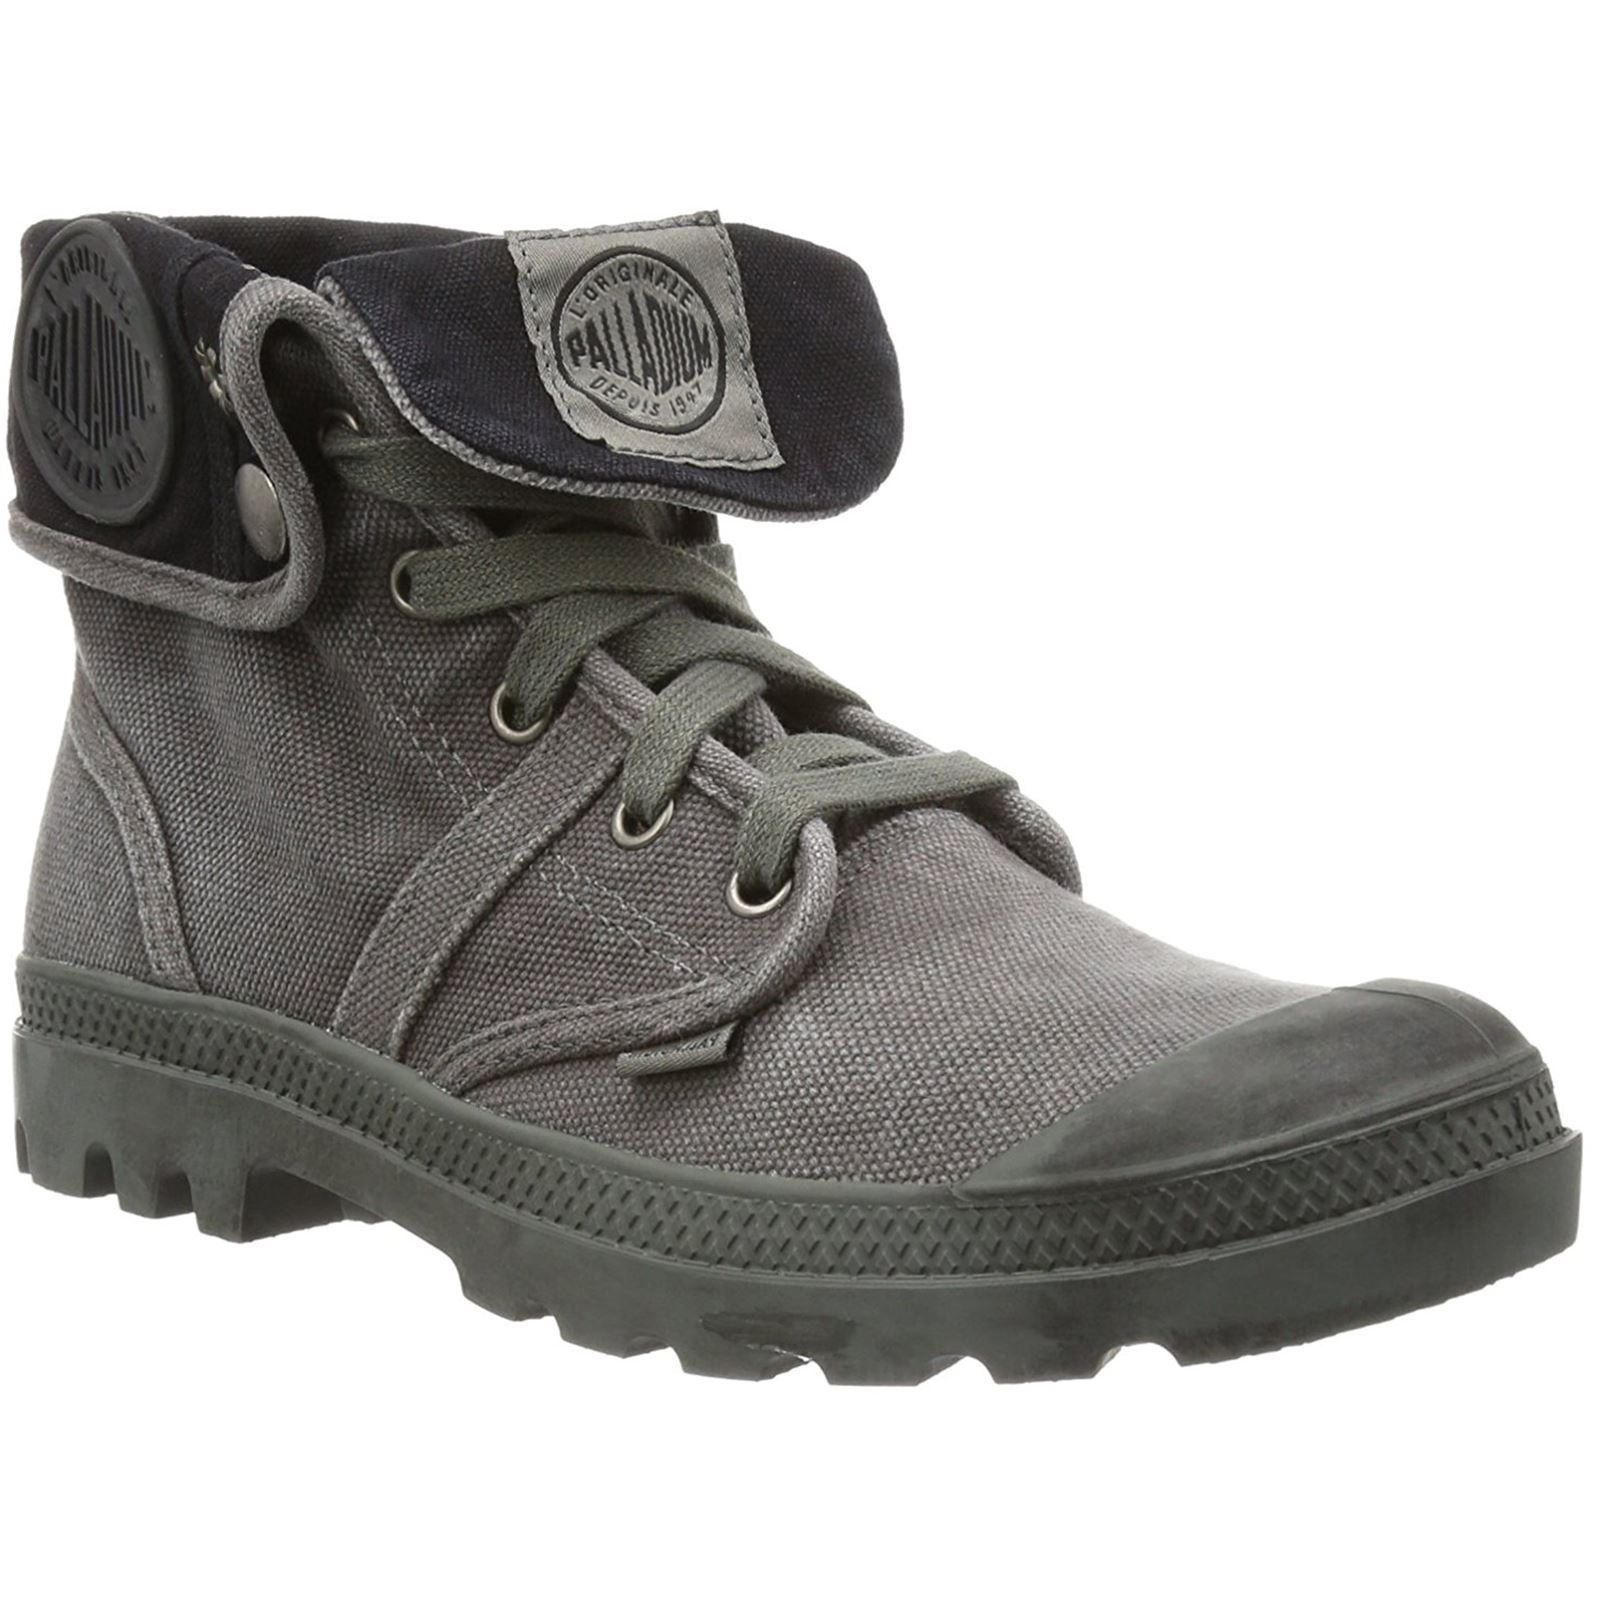 Palladium Canvas Pallabrouse Baggy Metal Damenschuhe Canvas Palladium Fold Down Casual Ankle Stiefel 4875ec